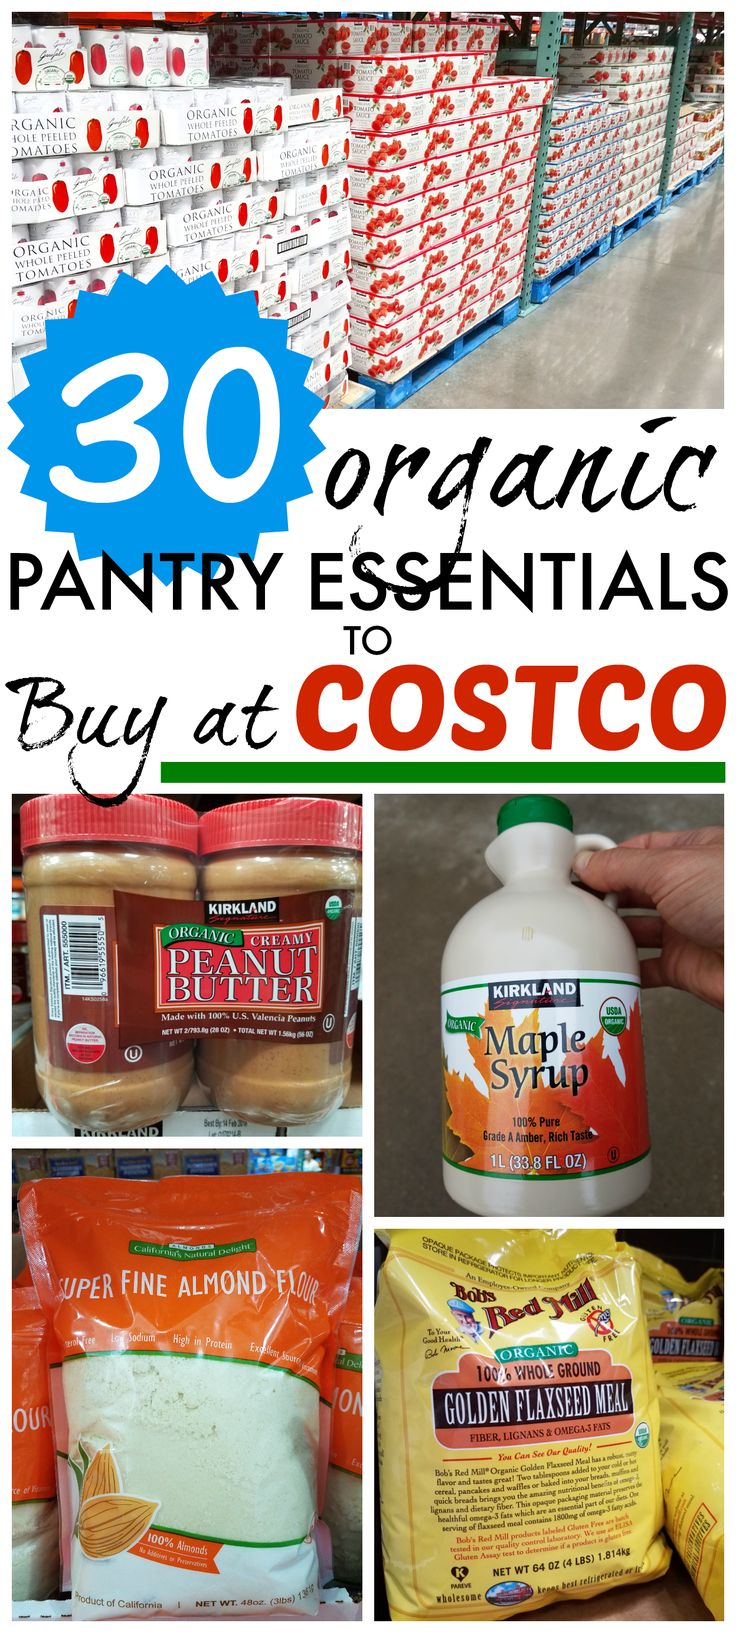 This list of over 30 organic pantry essentials at Costco can help you be prepared to make delicious and nutritious meals without breaking your budget!